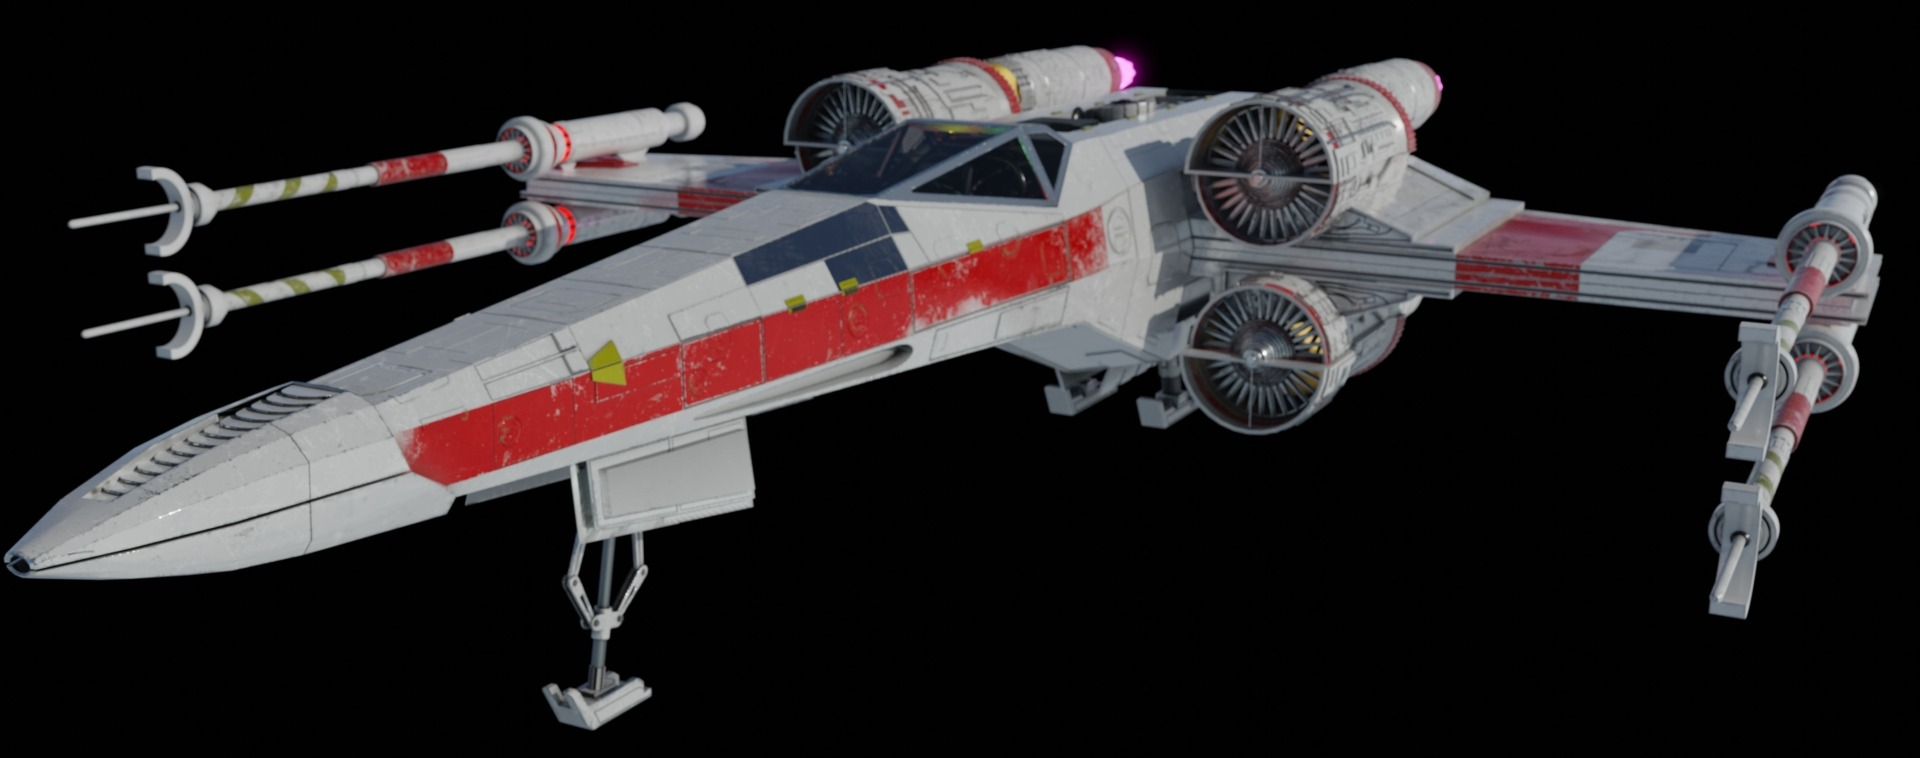 xwing4